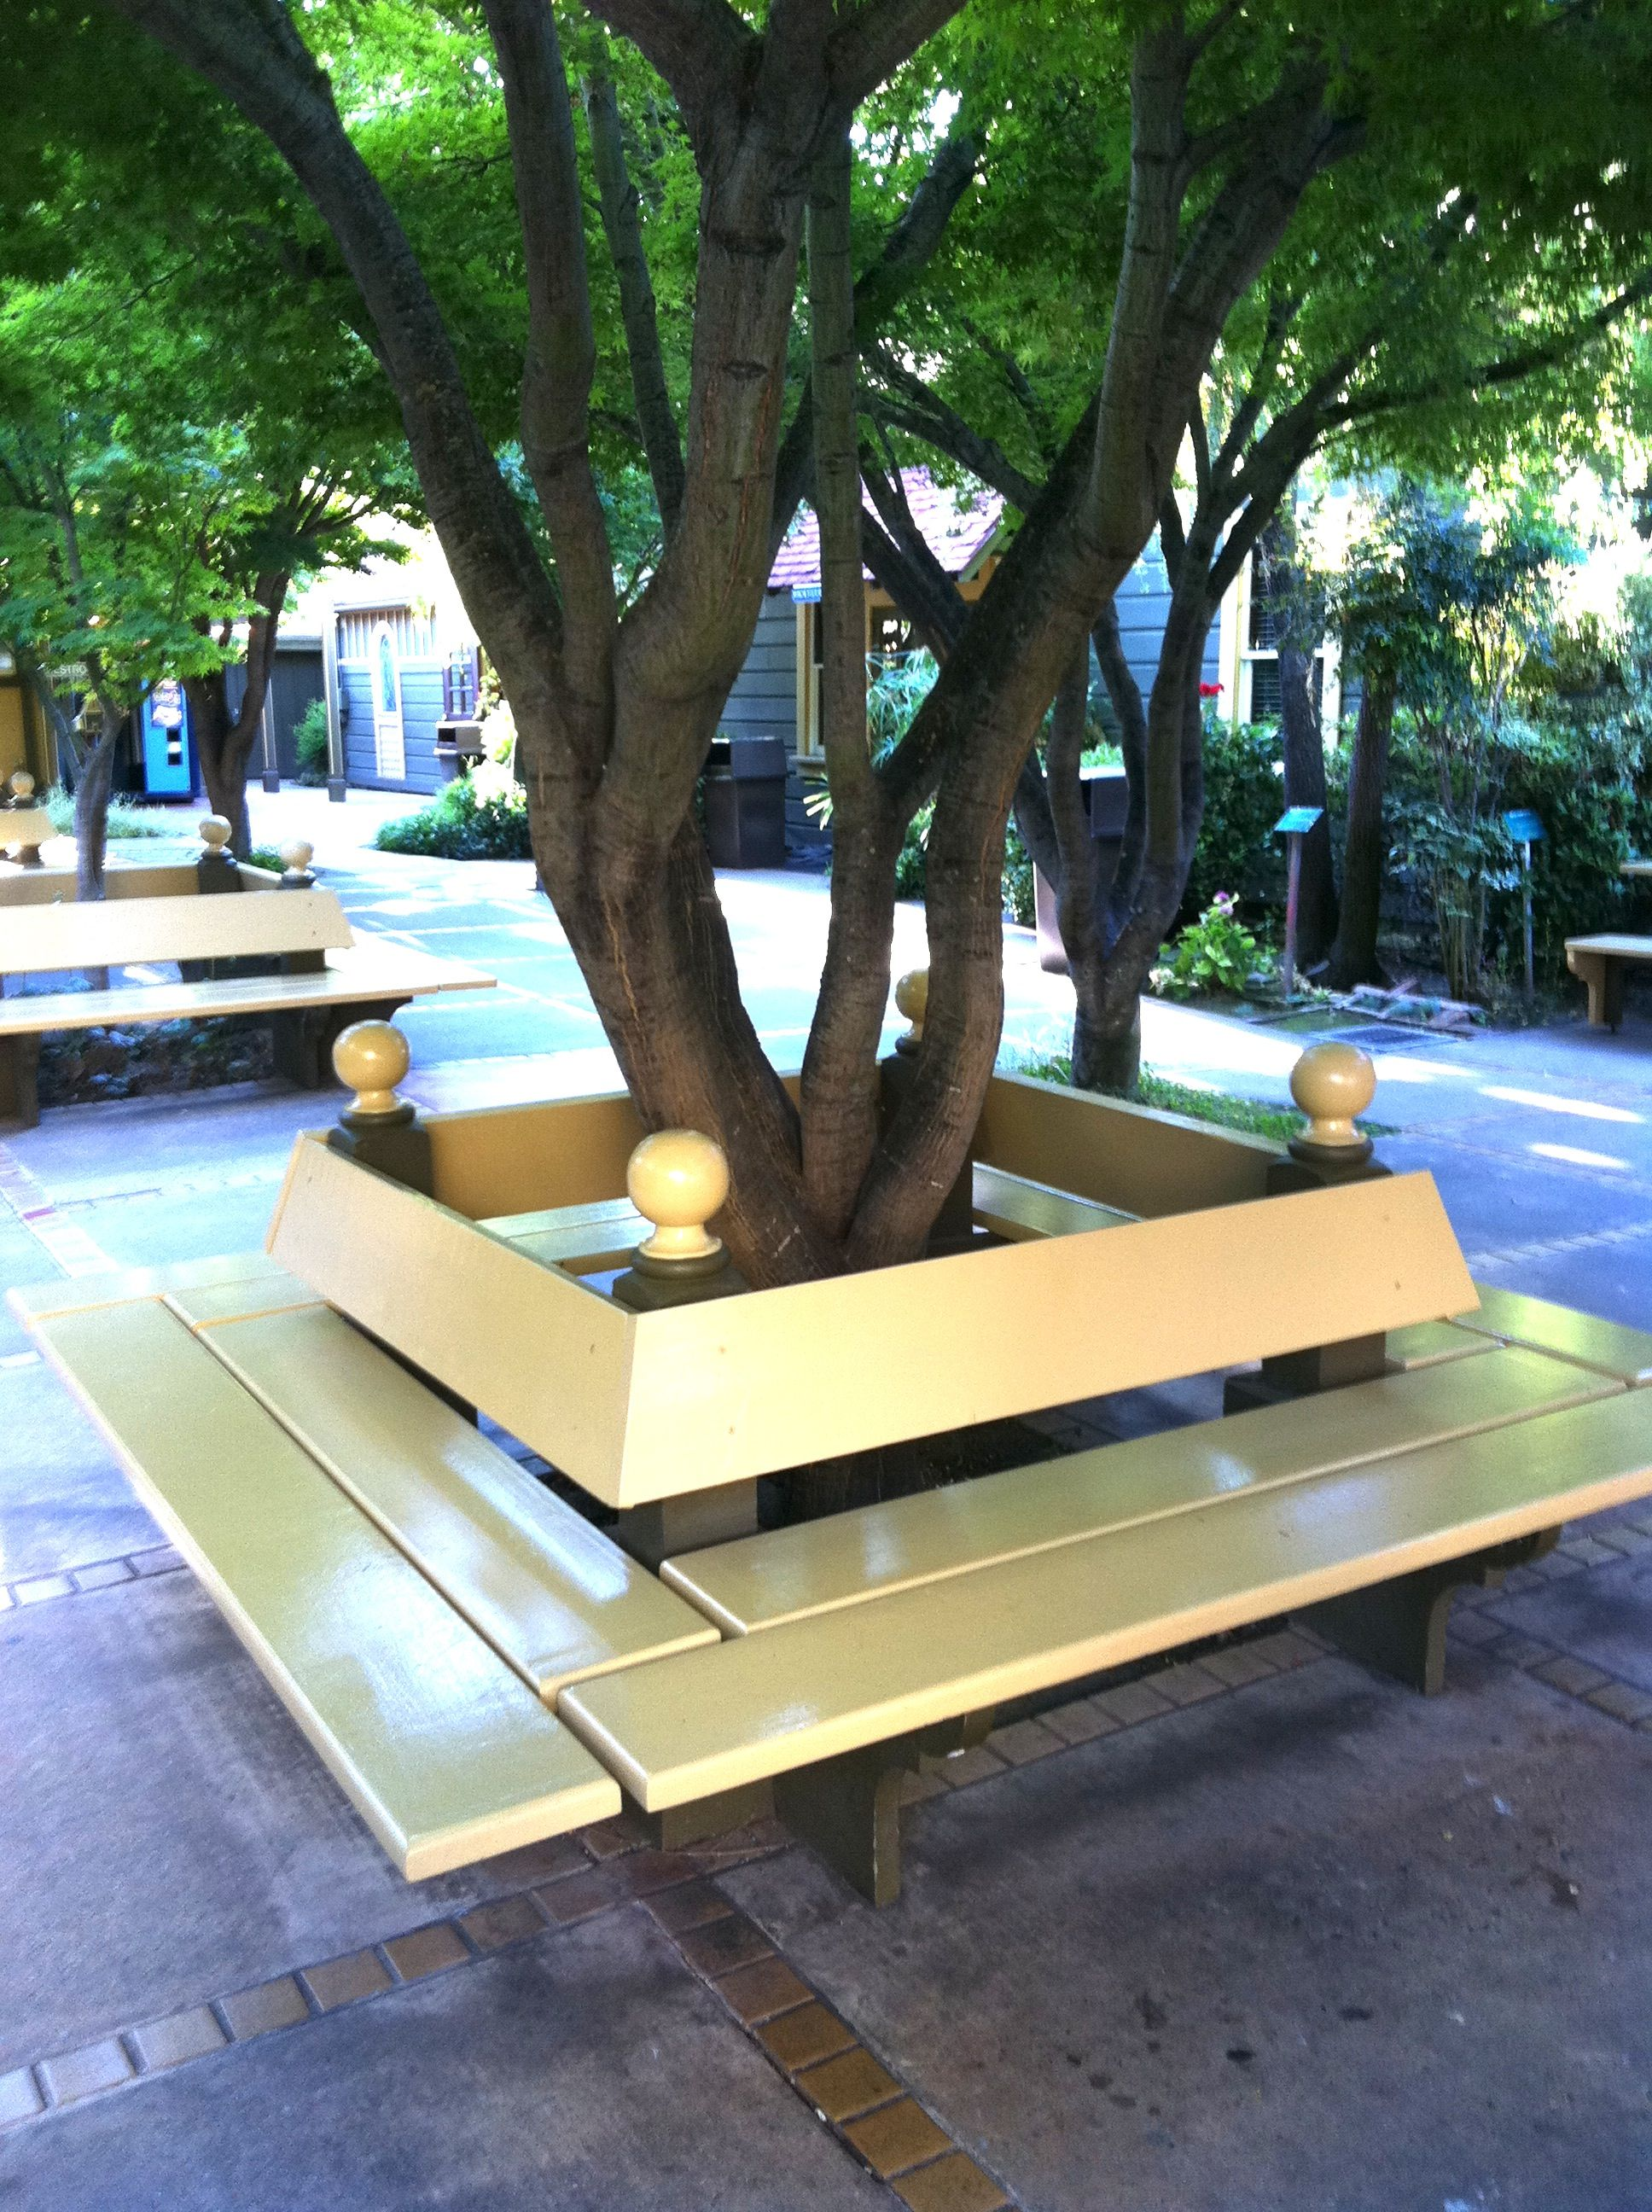 Amazing photo of bench around a tree trunk backyard Pinterest with #2368A8 color and 1936x2592 pixels